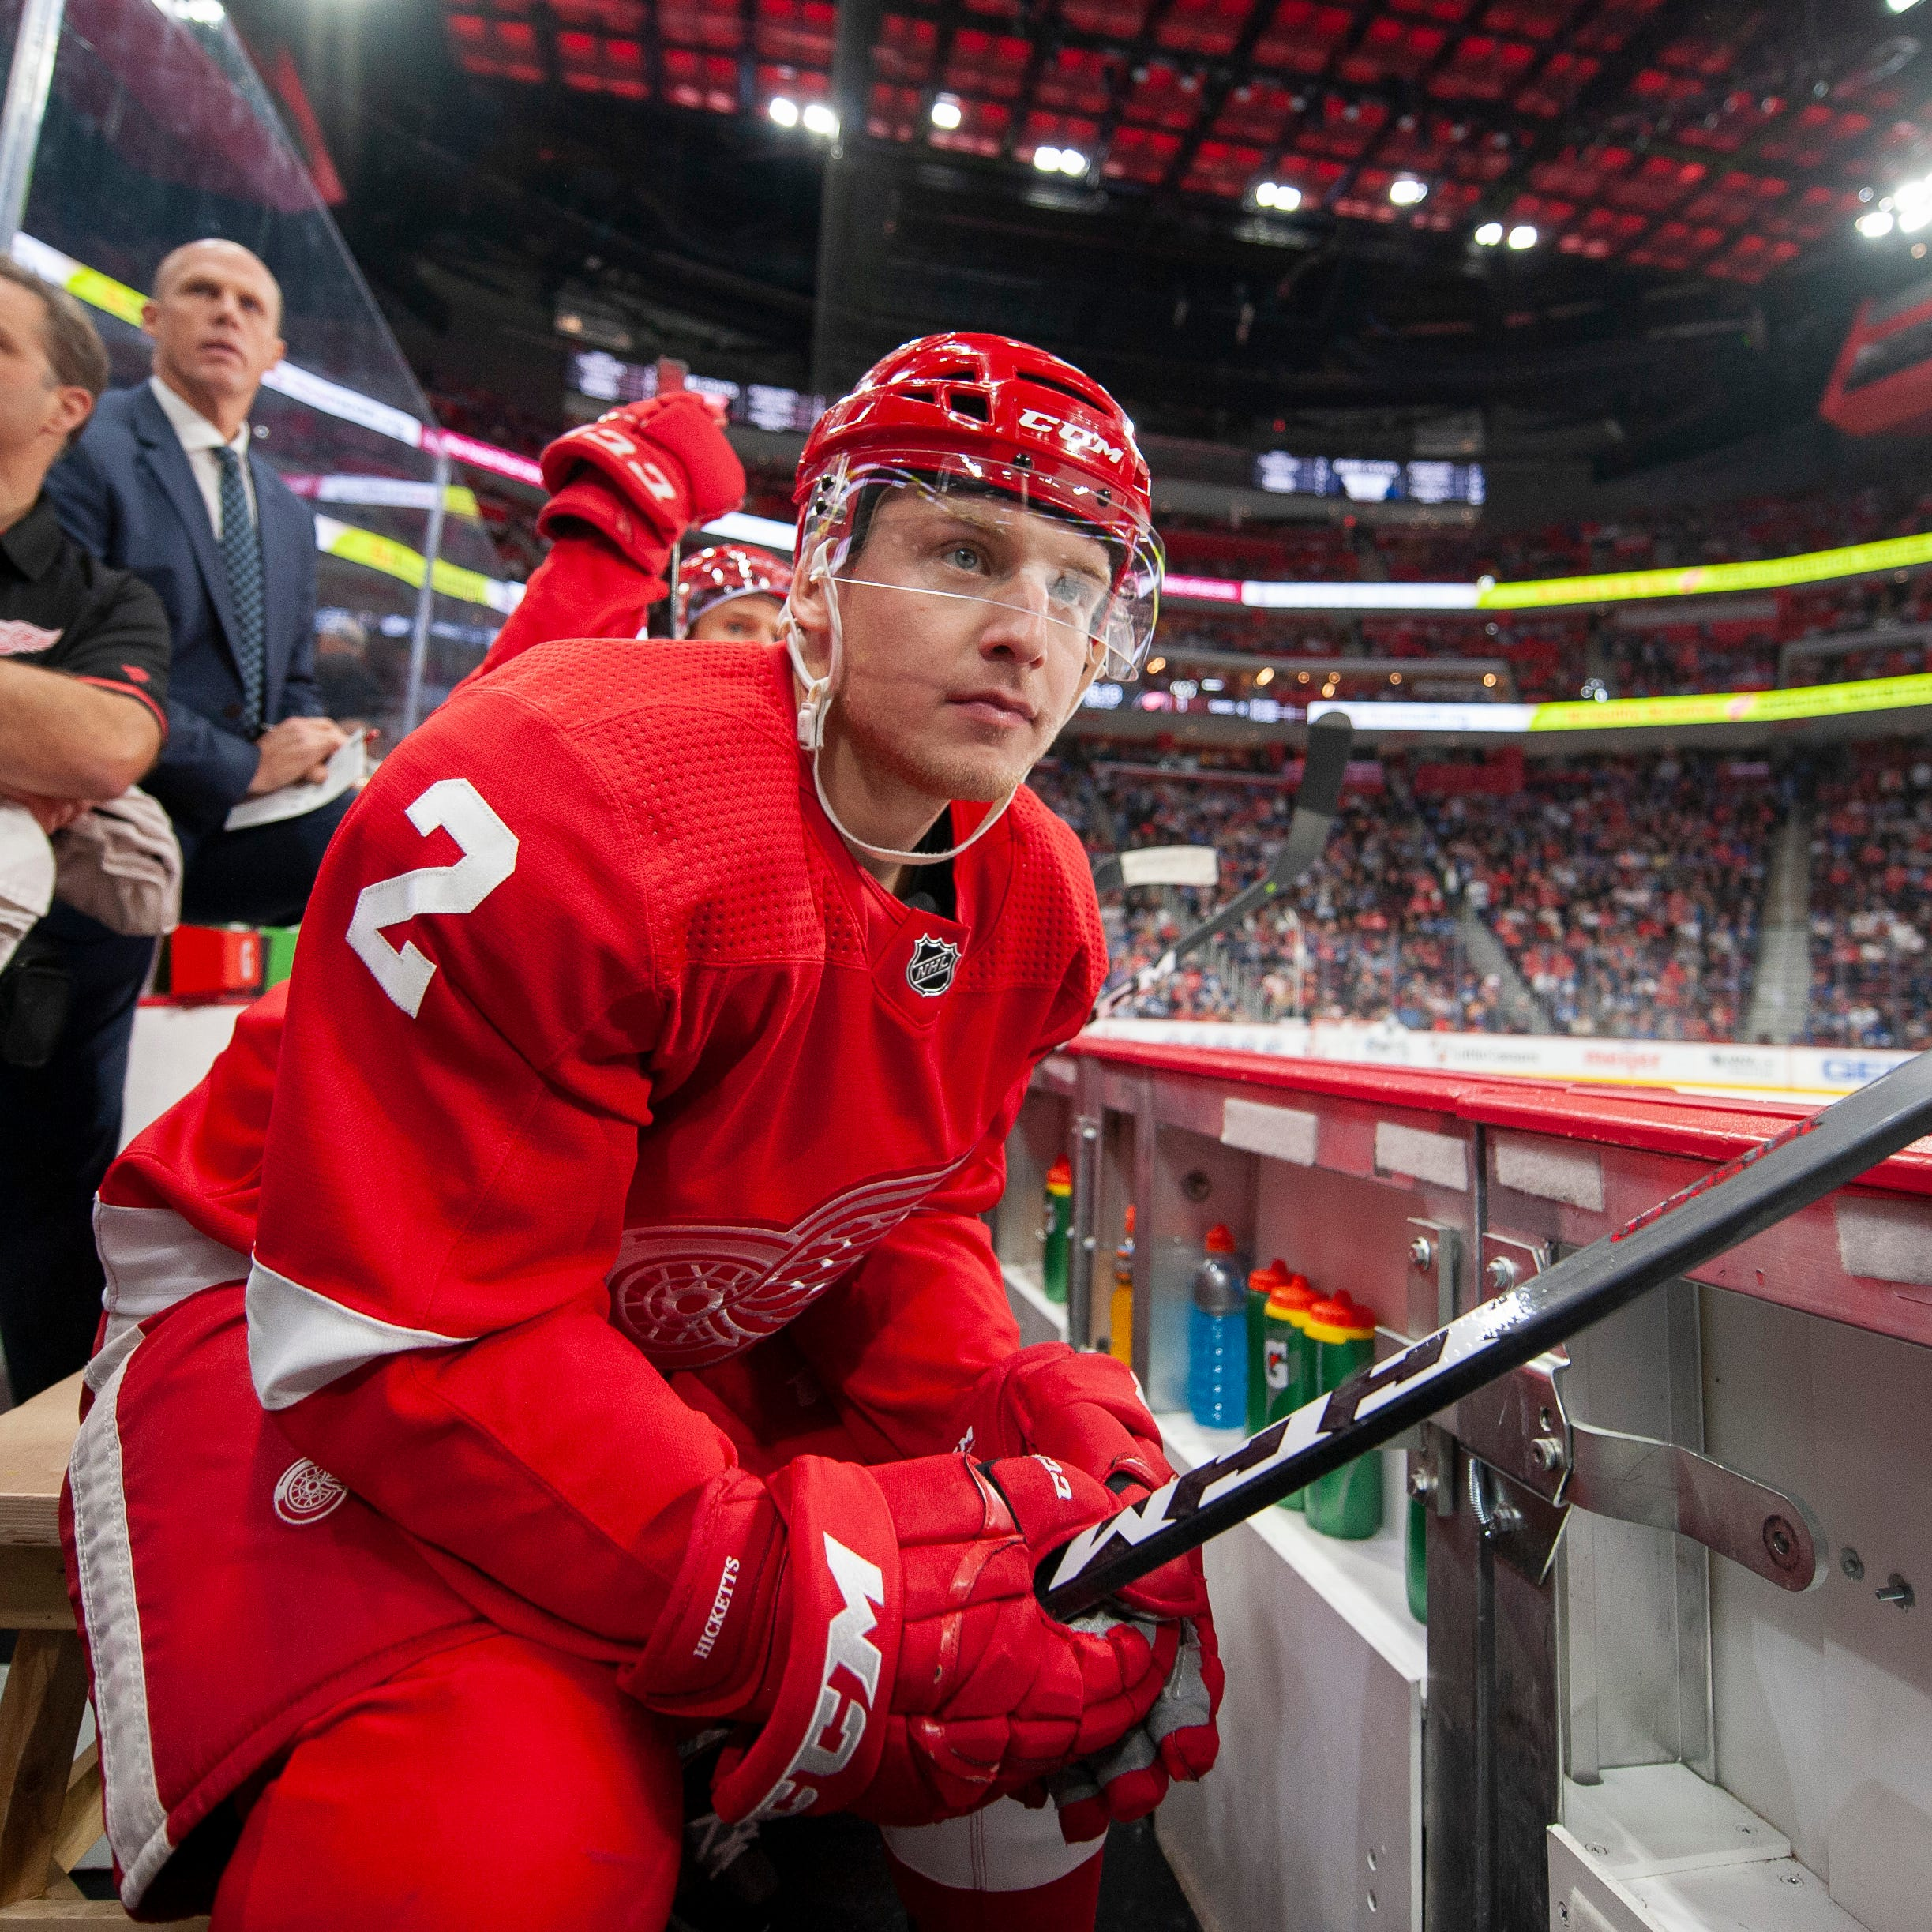 Joe Hicketts, Vili Saarijarvi vie to be part of long-term solution on Red Wings defense